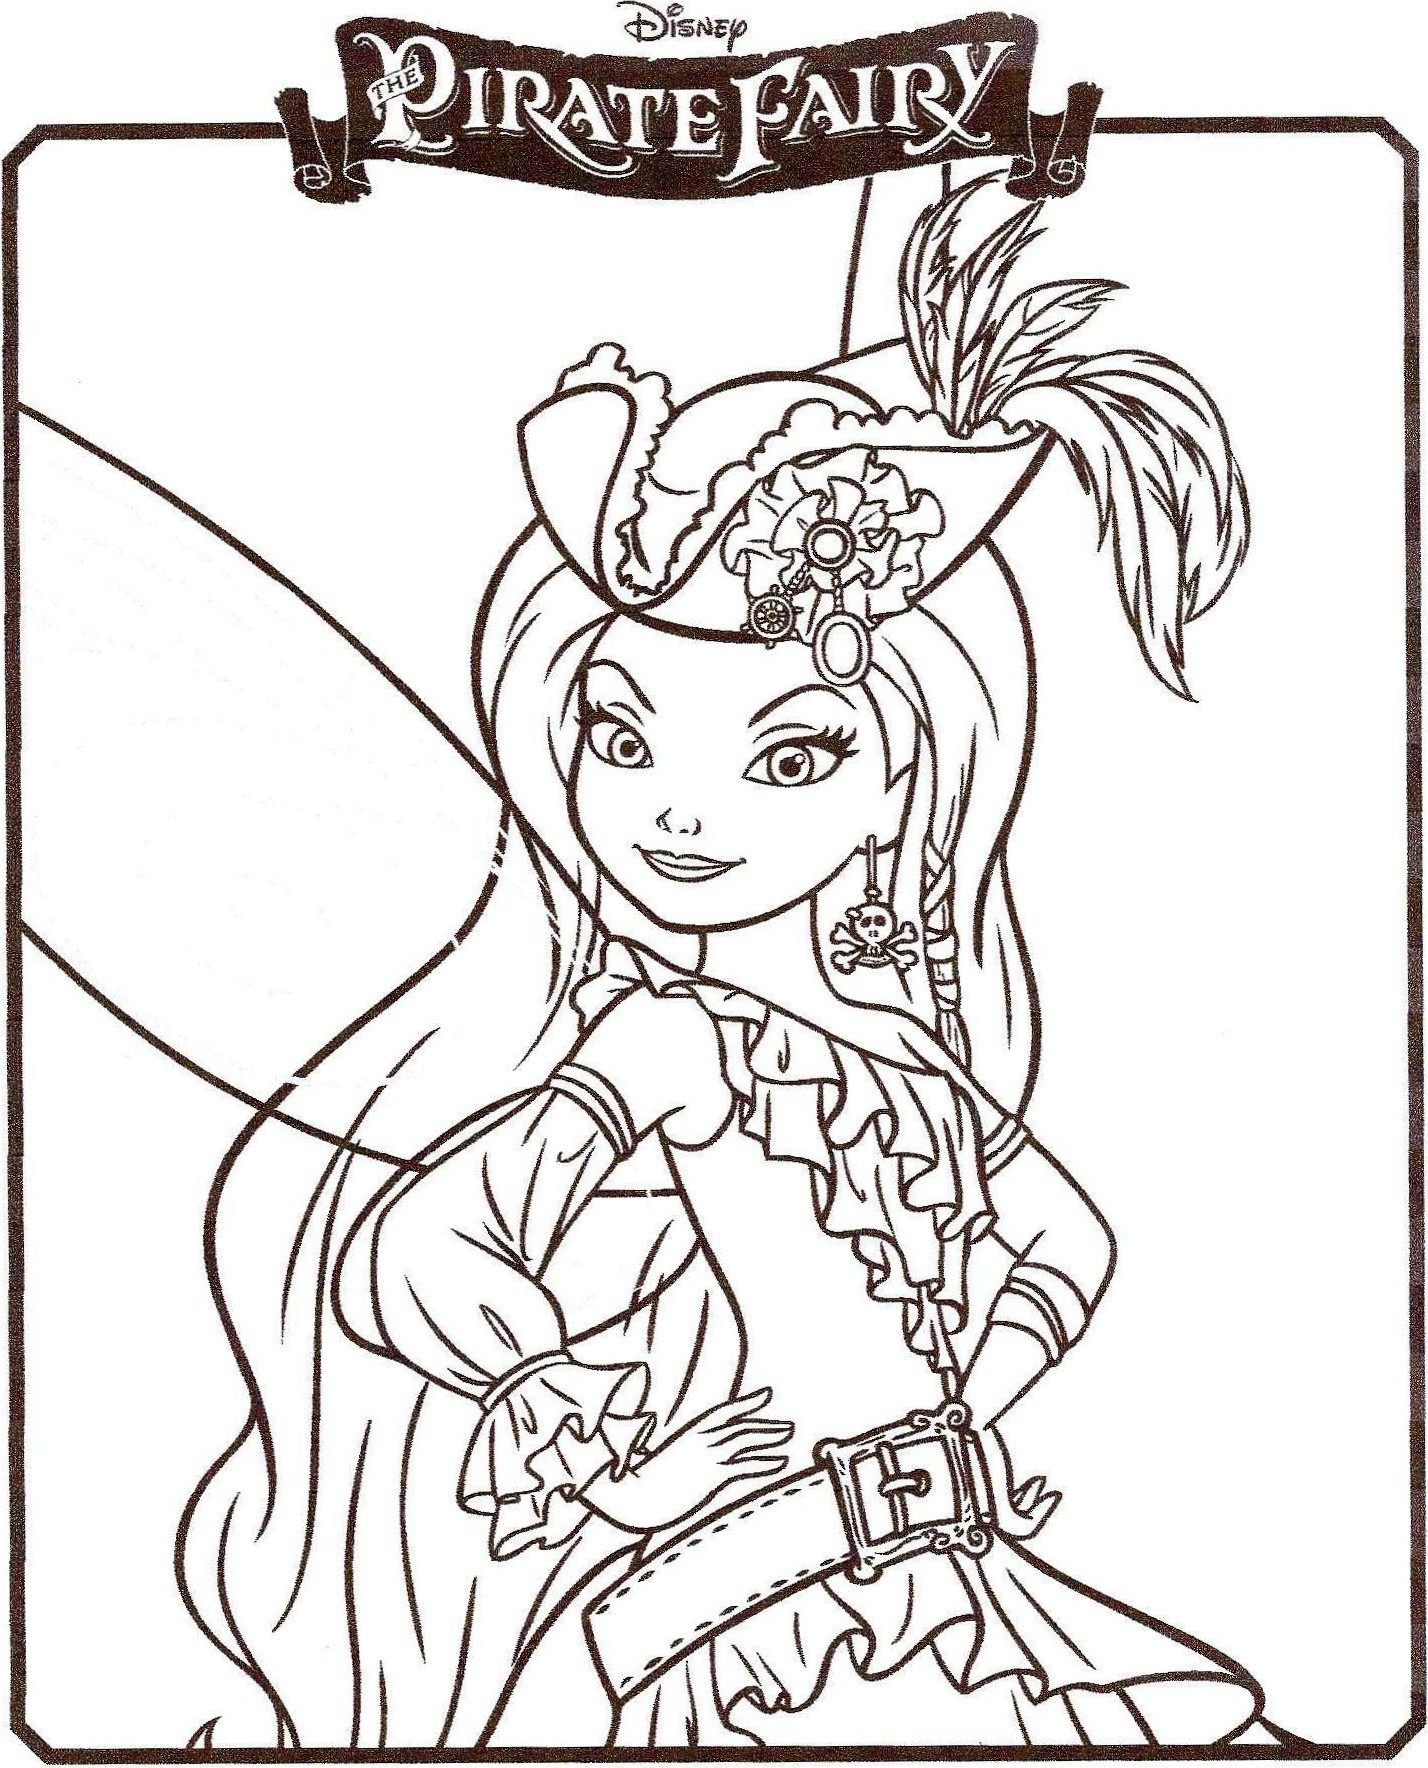 Coloriage a imprimer ondine fee pirate gratuit et colorier - Fee coloriage ...